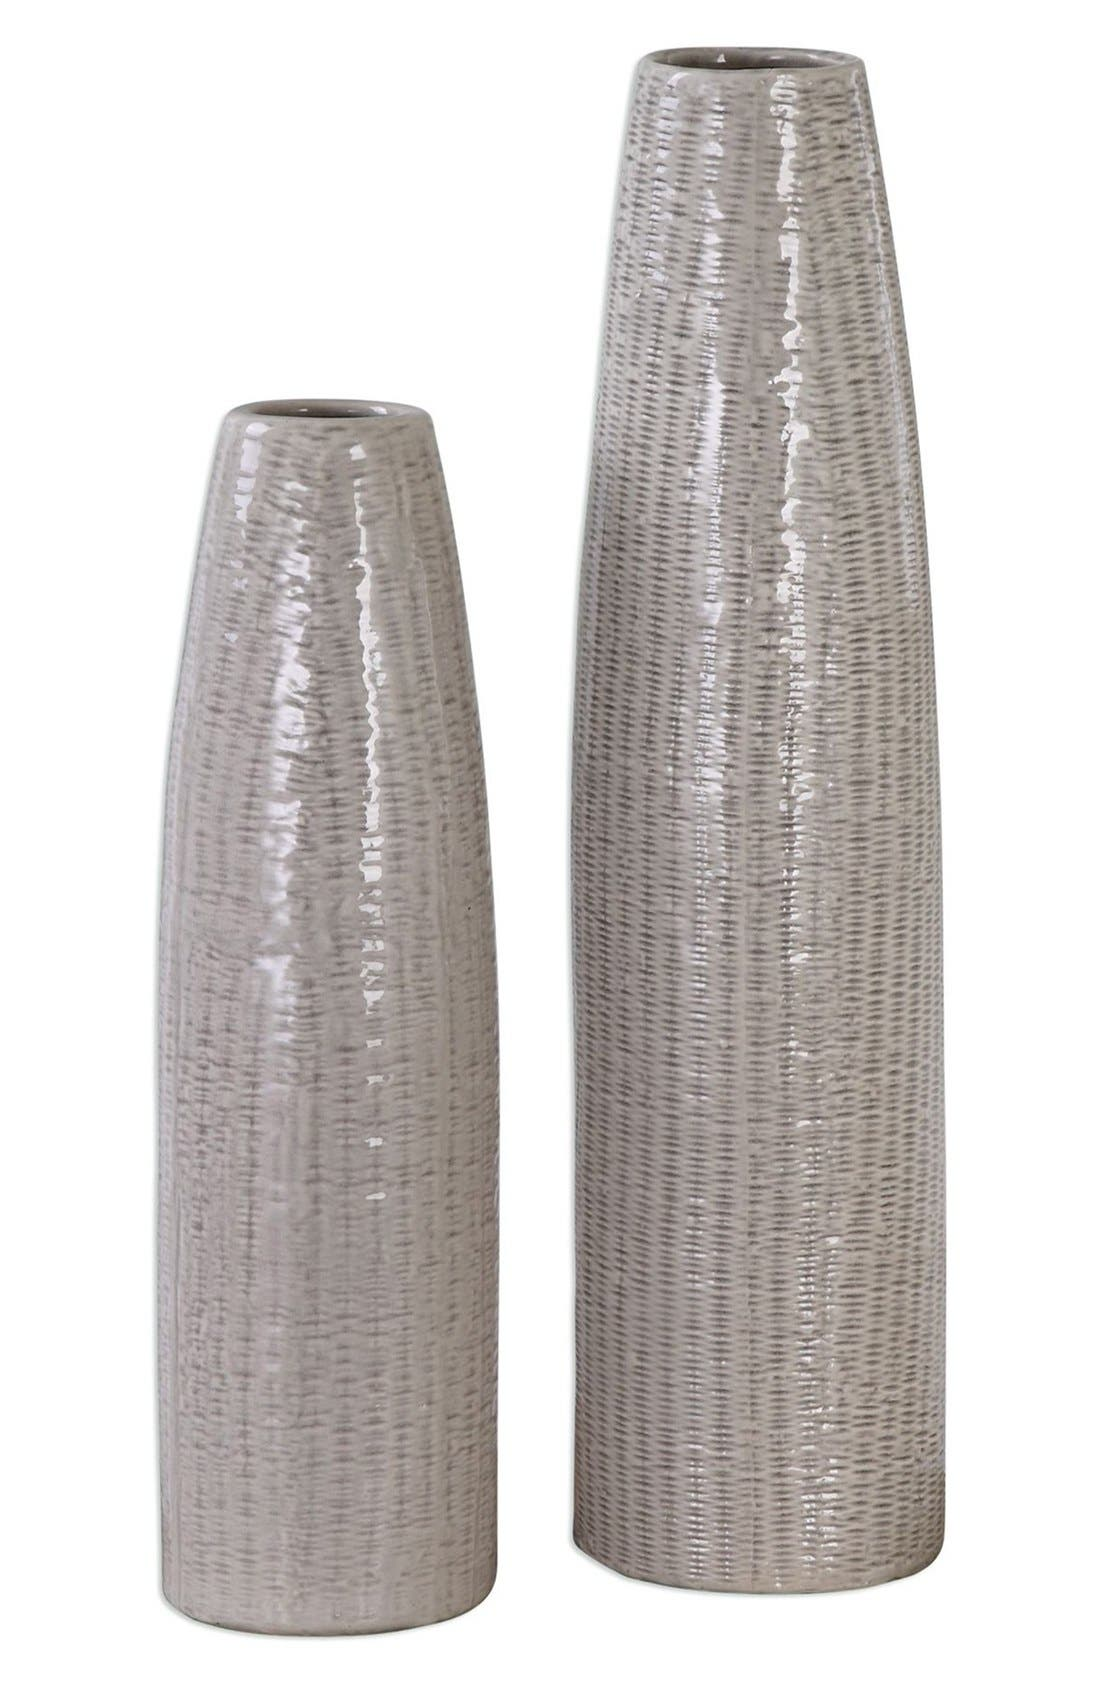 Uttermost Textured Ceramic Vases (Set of 2)